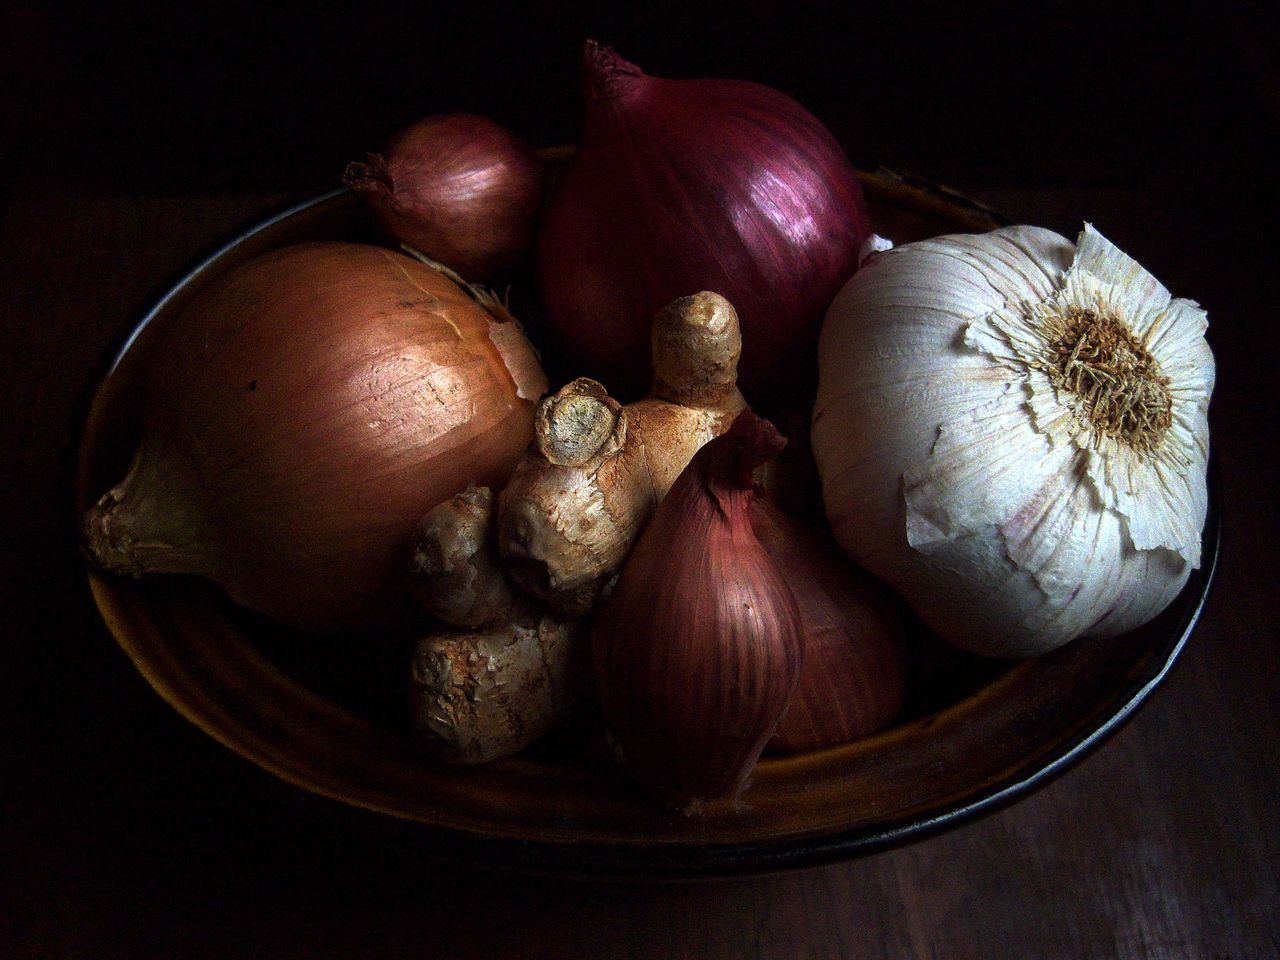 Brown Onion Food Food And Drink Garlic Ginger Onion Organic Red Onion Vegetable